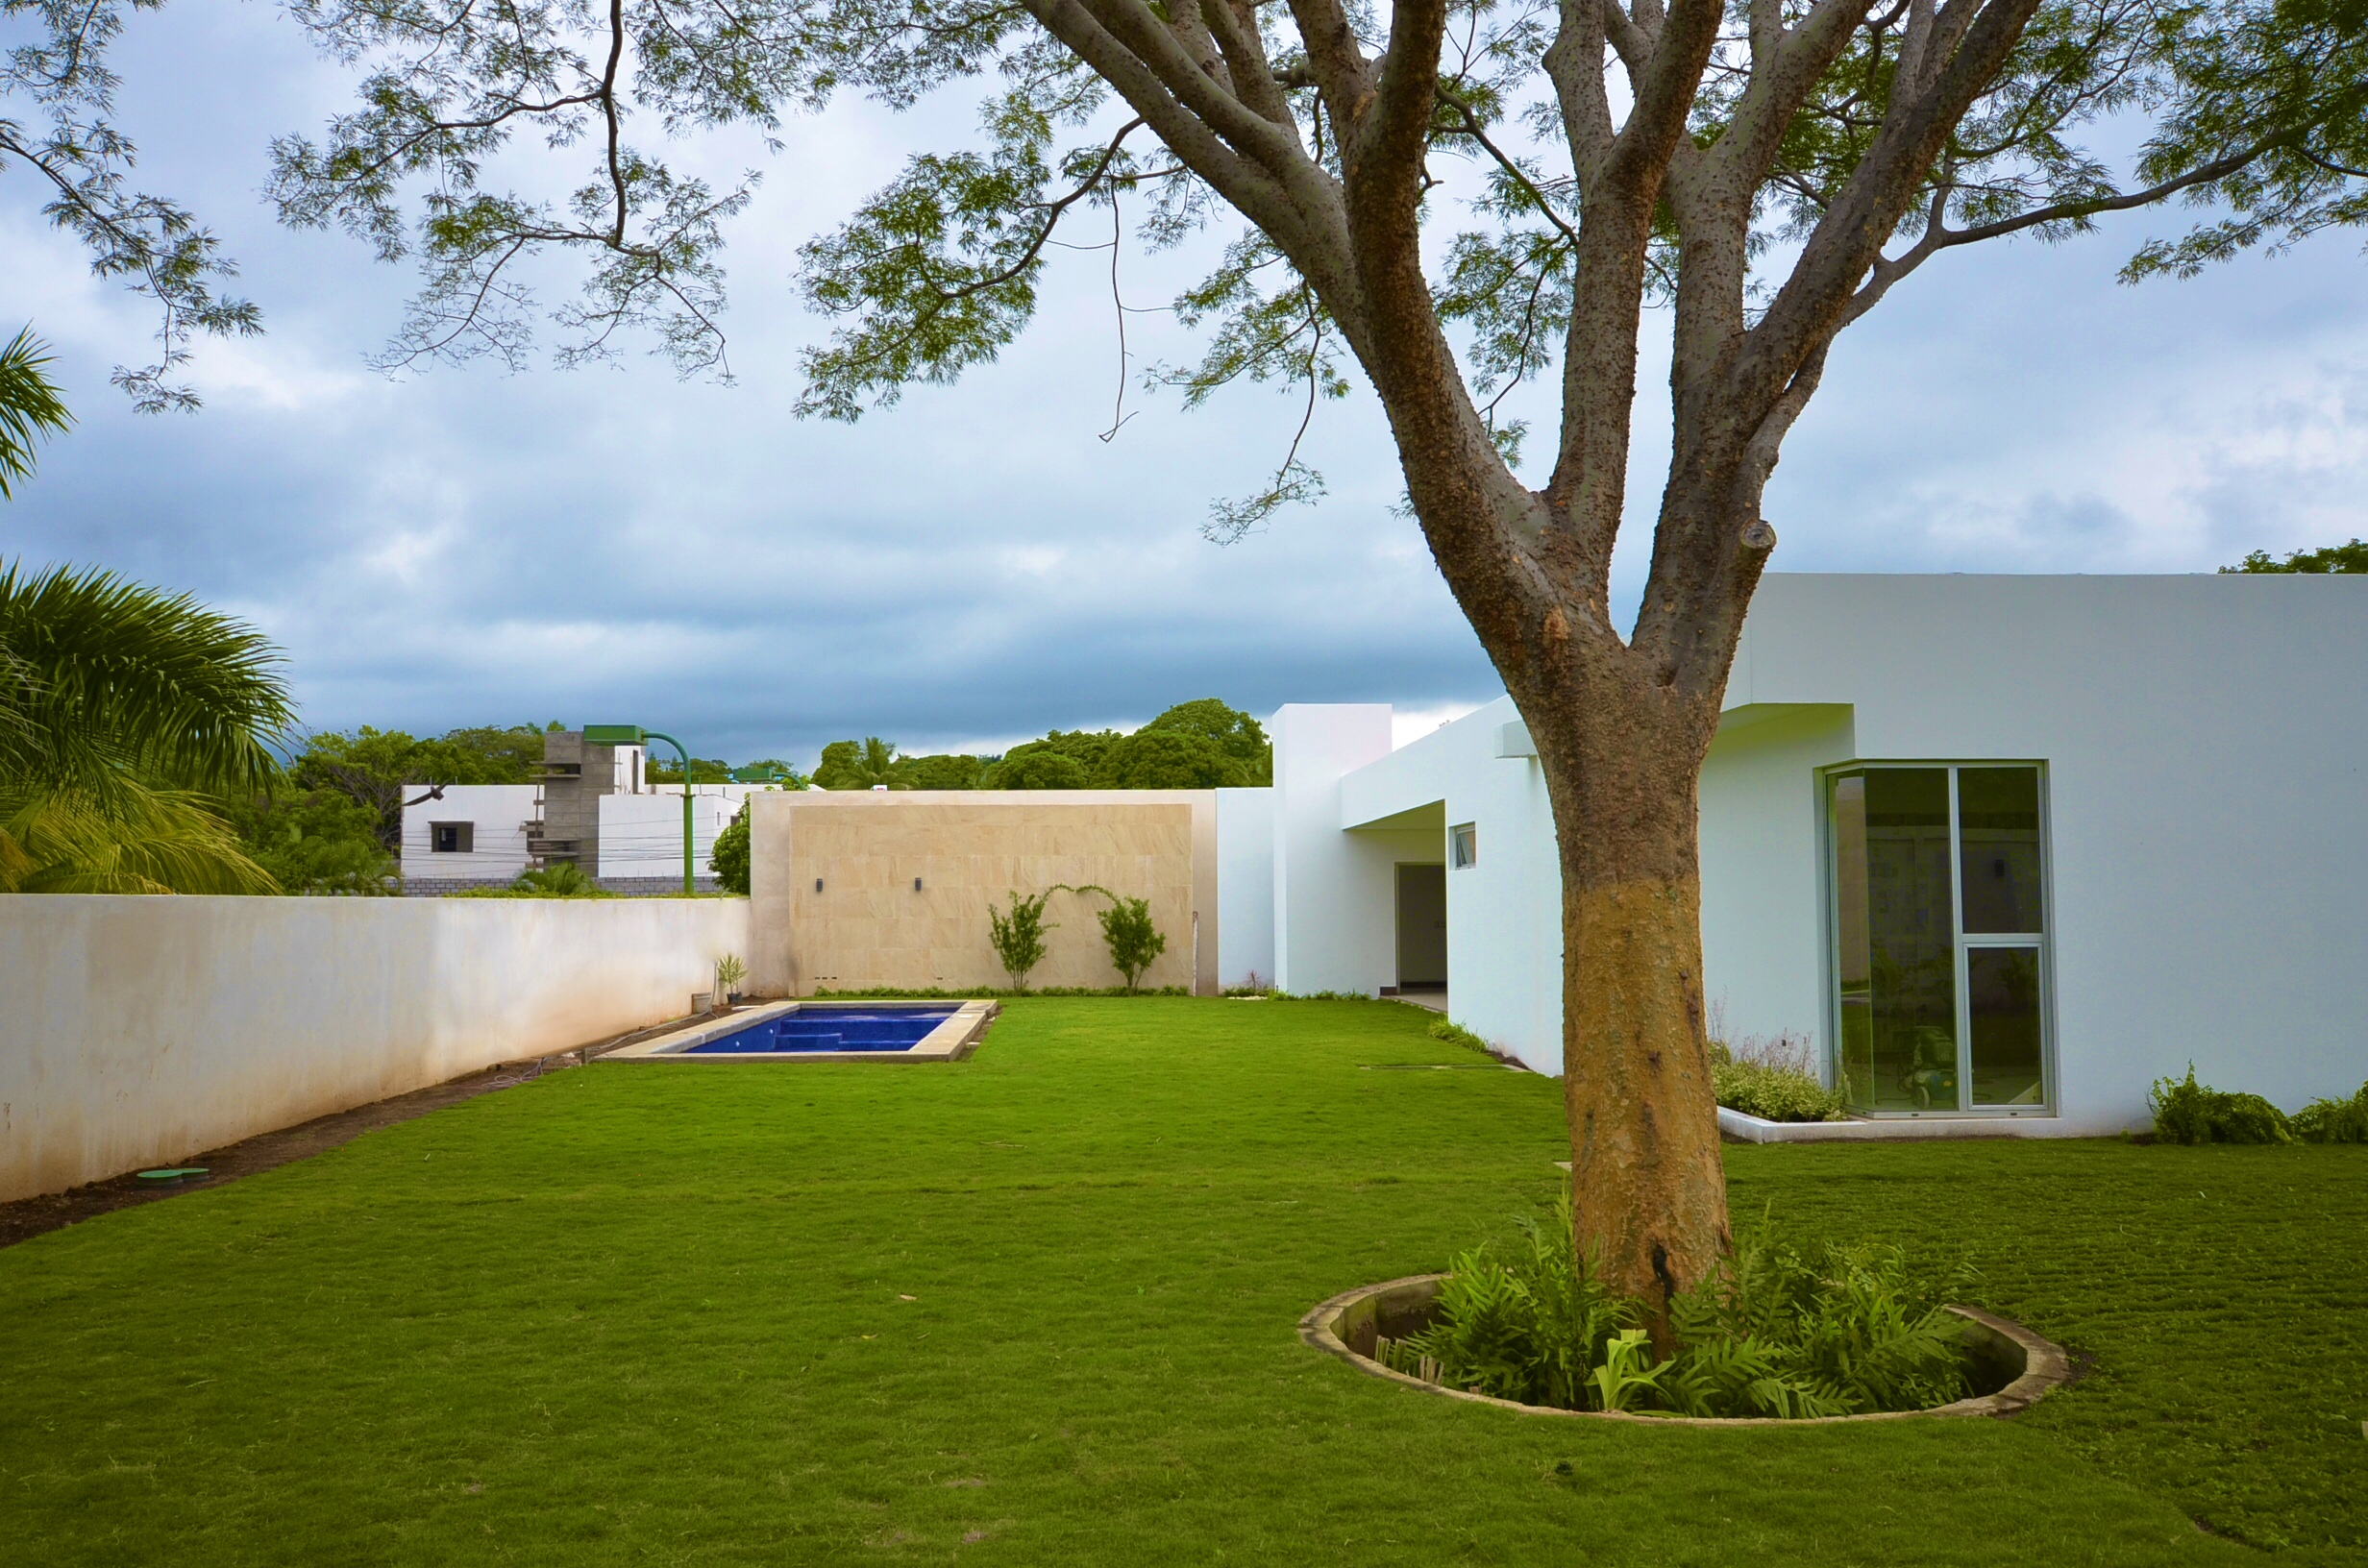 Ellegant lawn, outside, architect design, EL Mirador Residence